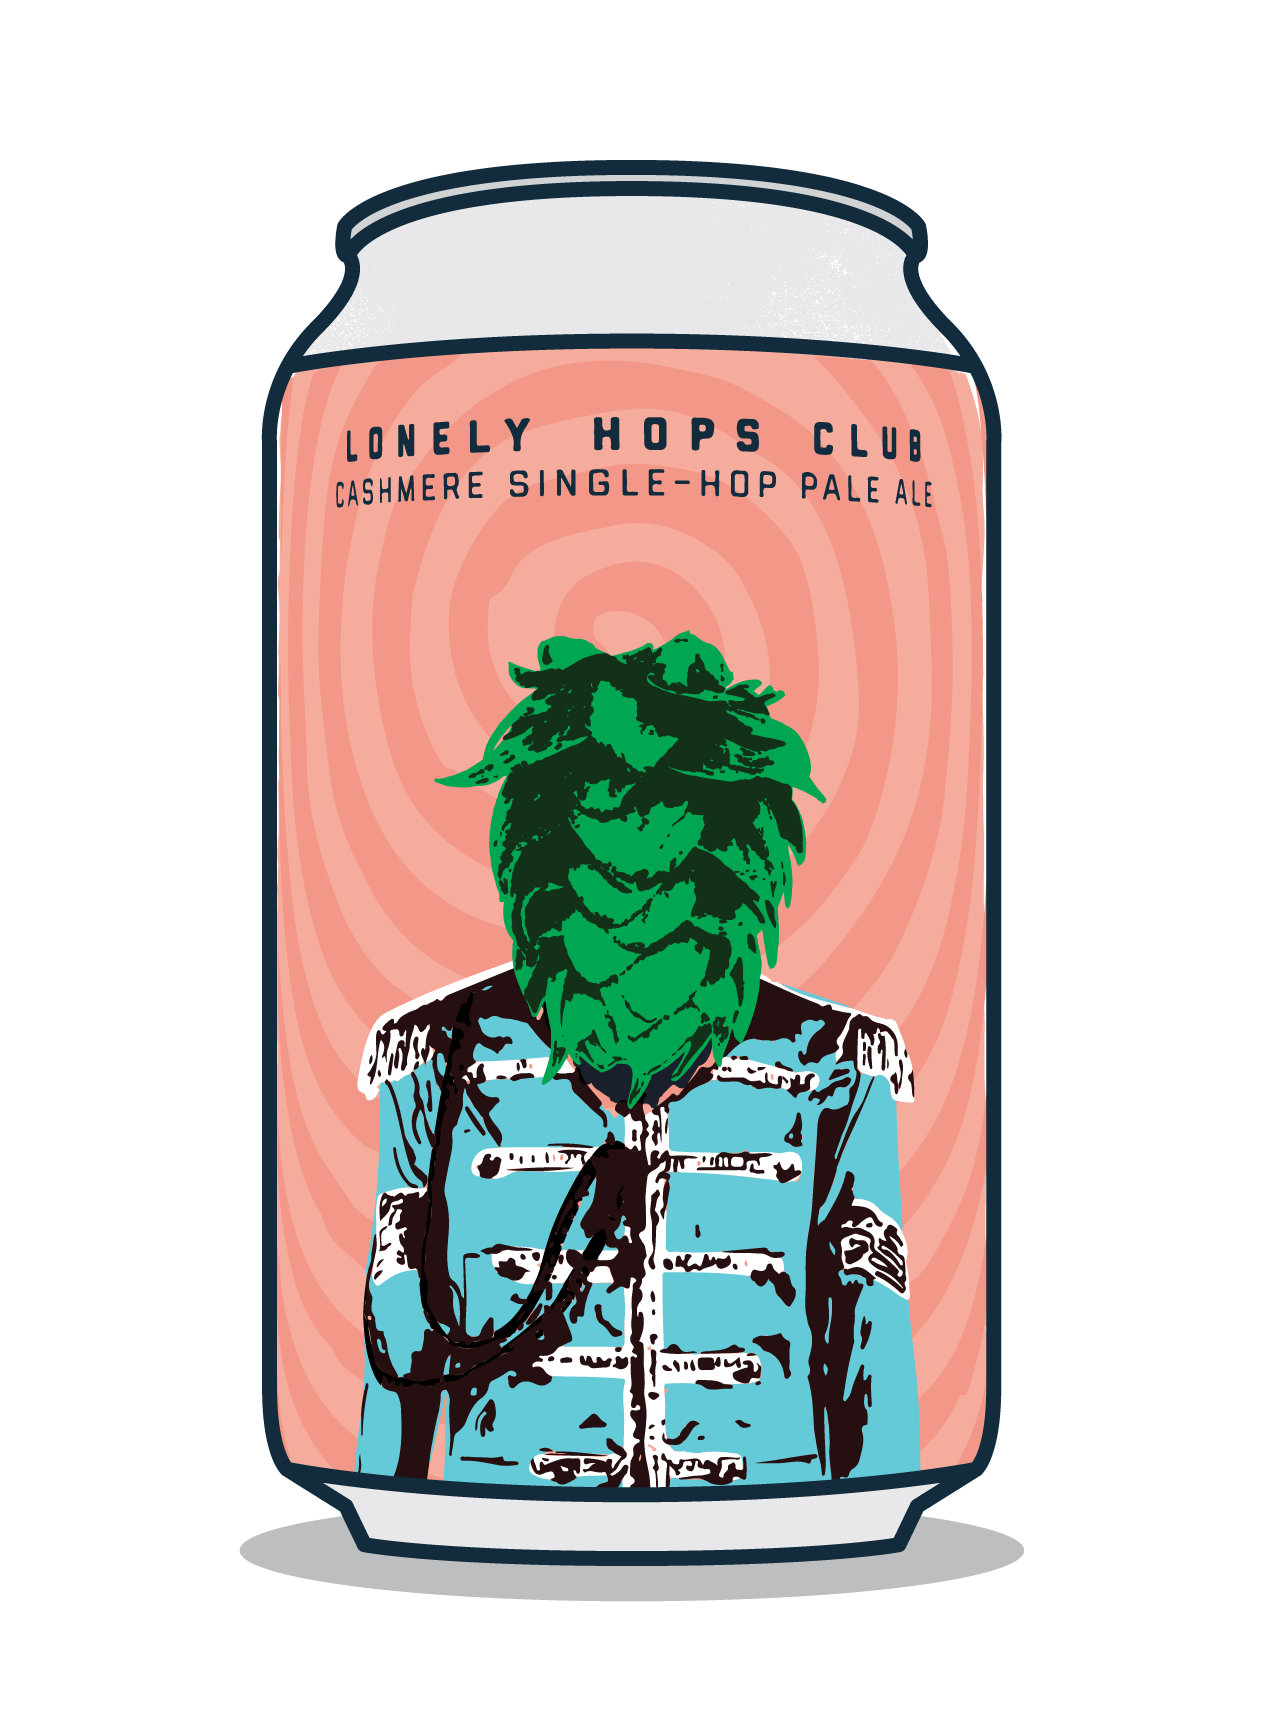 Lonely Hops Club - Cashmere Image